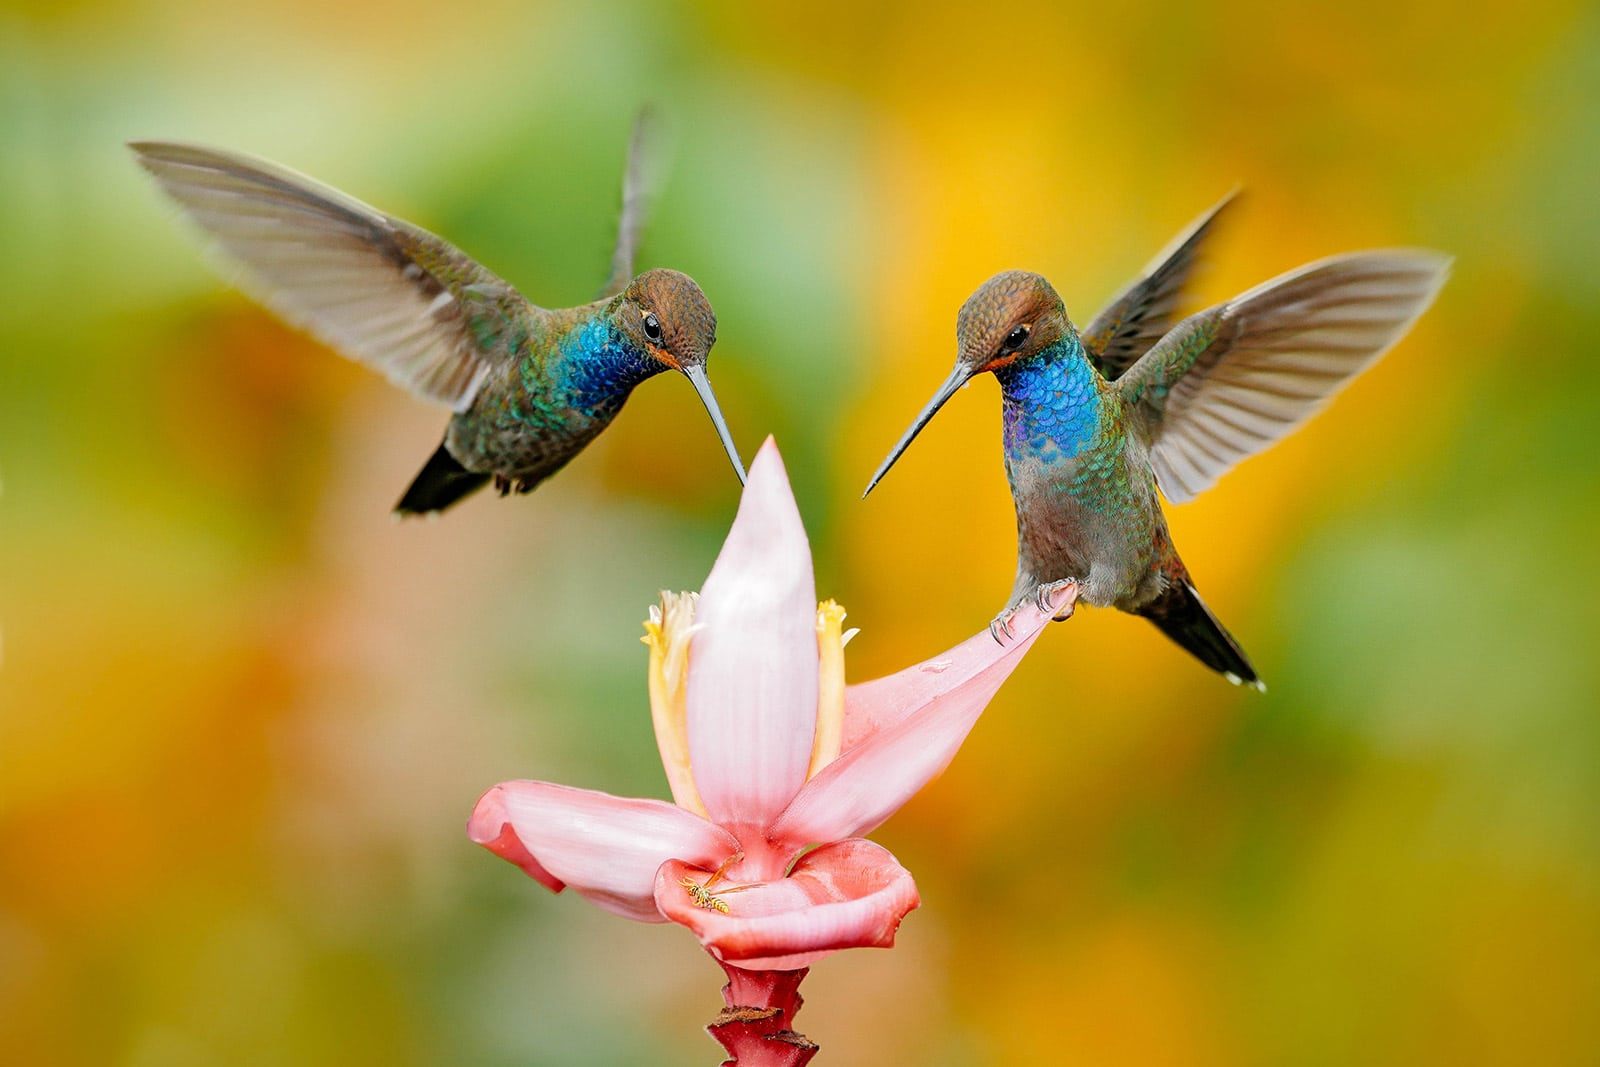 Two hummingbirds drinking from a pink flower